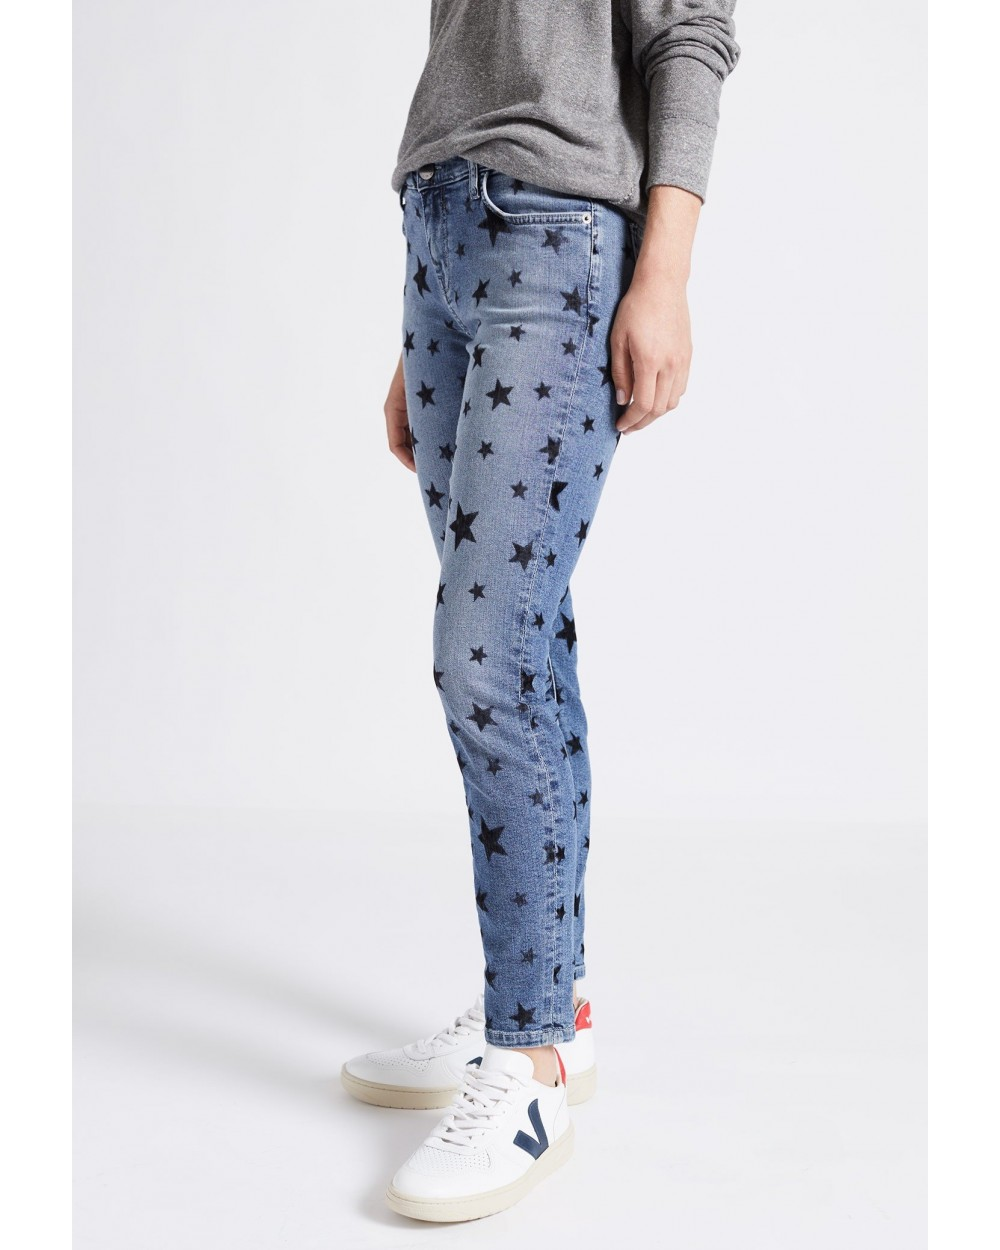 JEANS THE STILETTO FLOCKED STAR